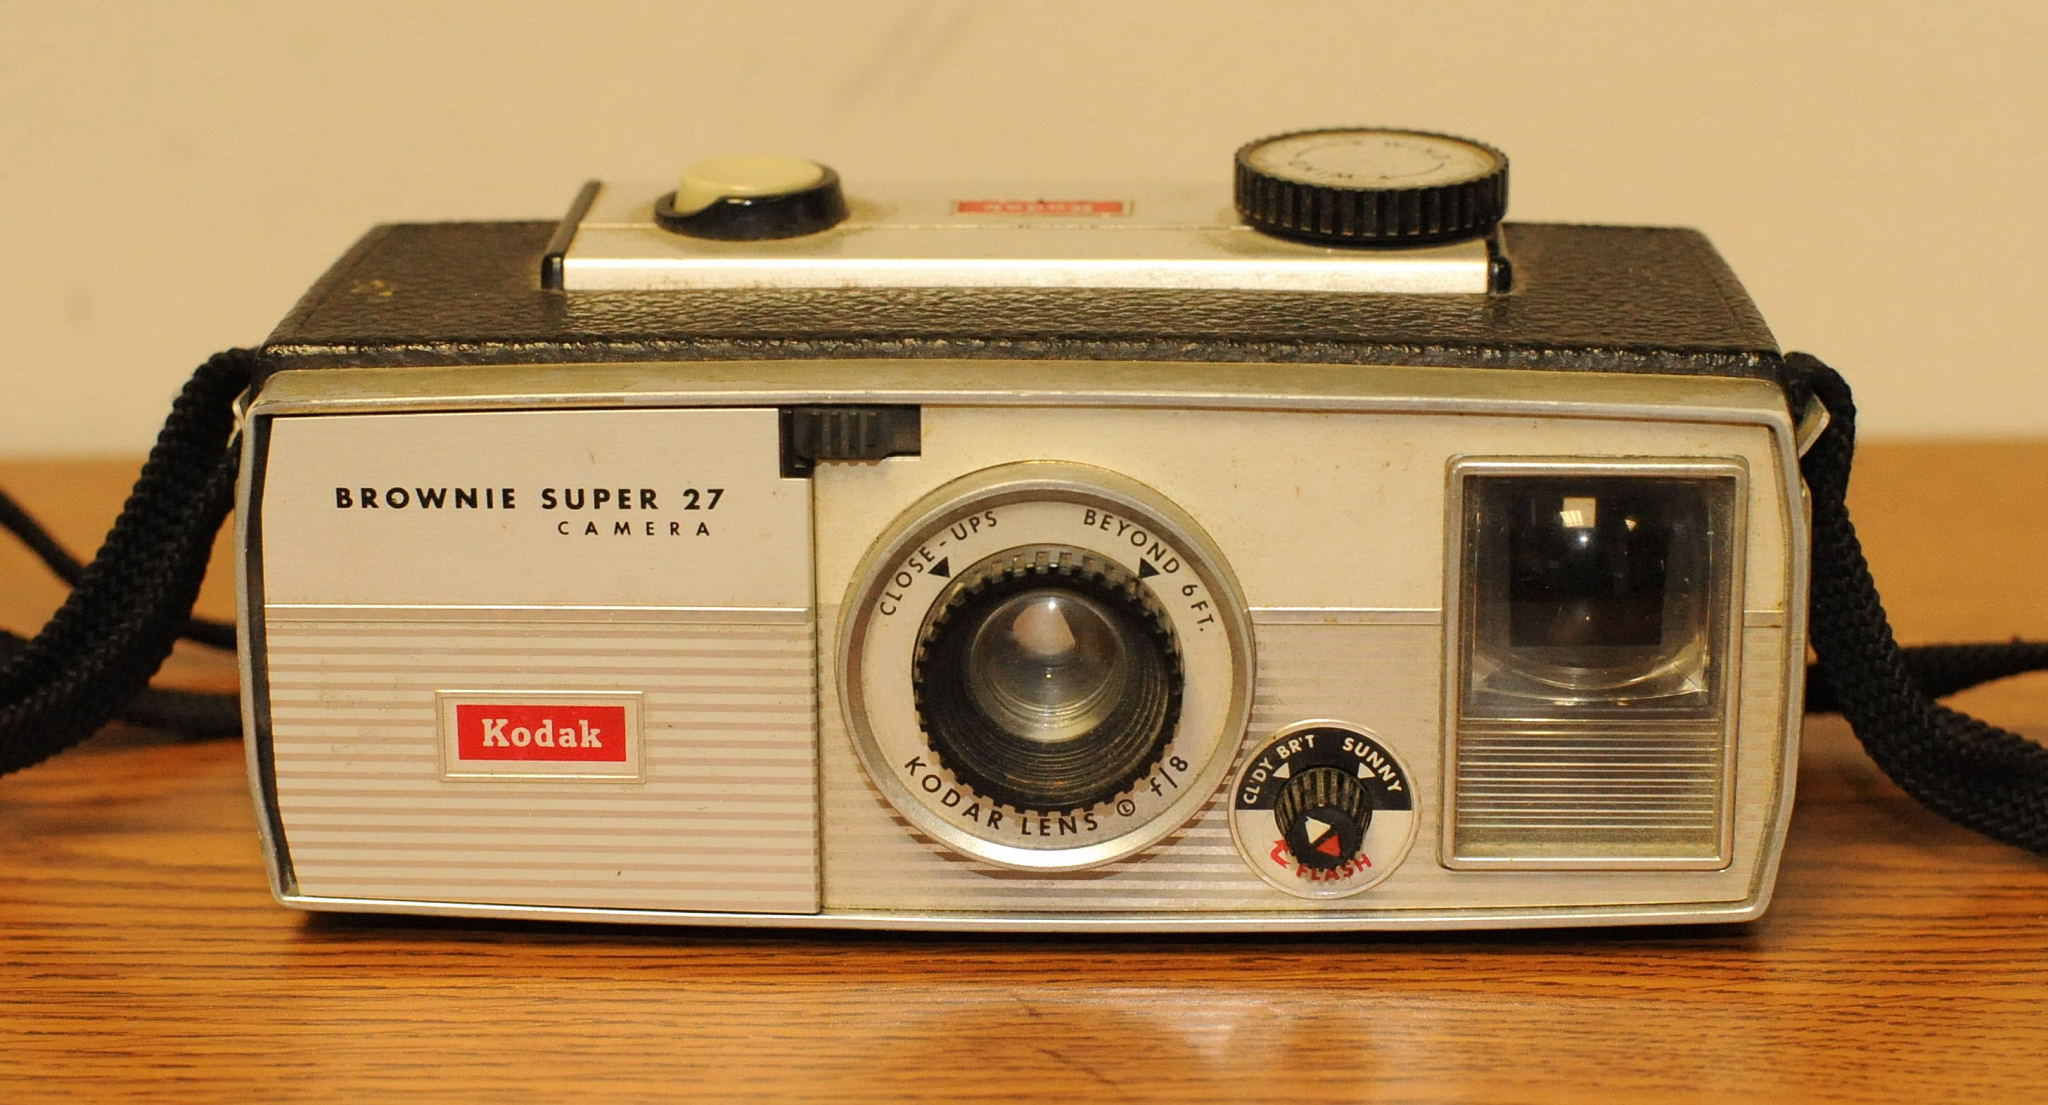 Kodak Brownie &quot;Super 27&quot; camera.  Photo by Chuck Miller.